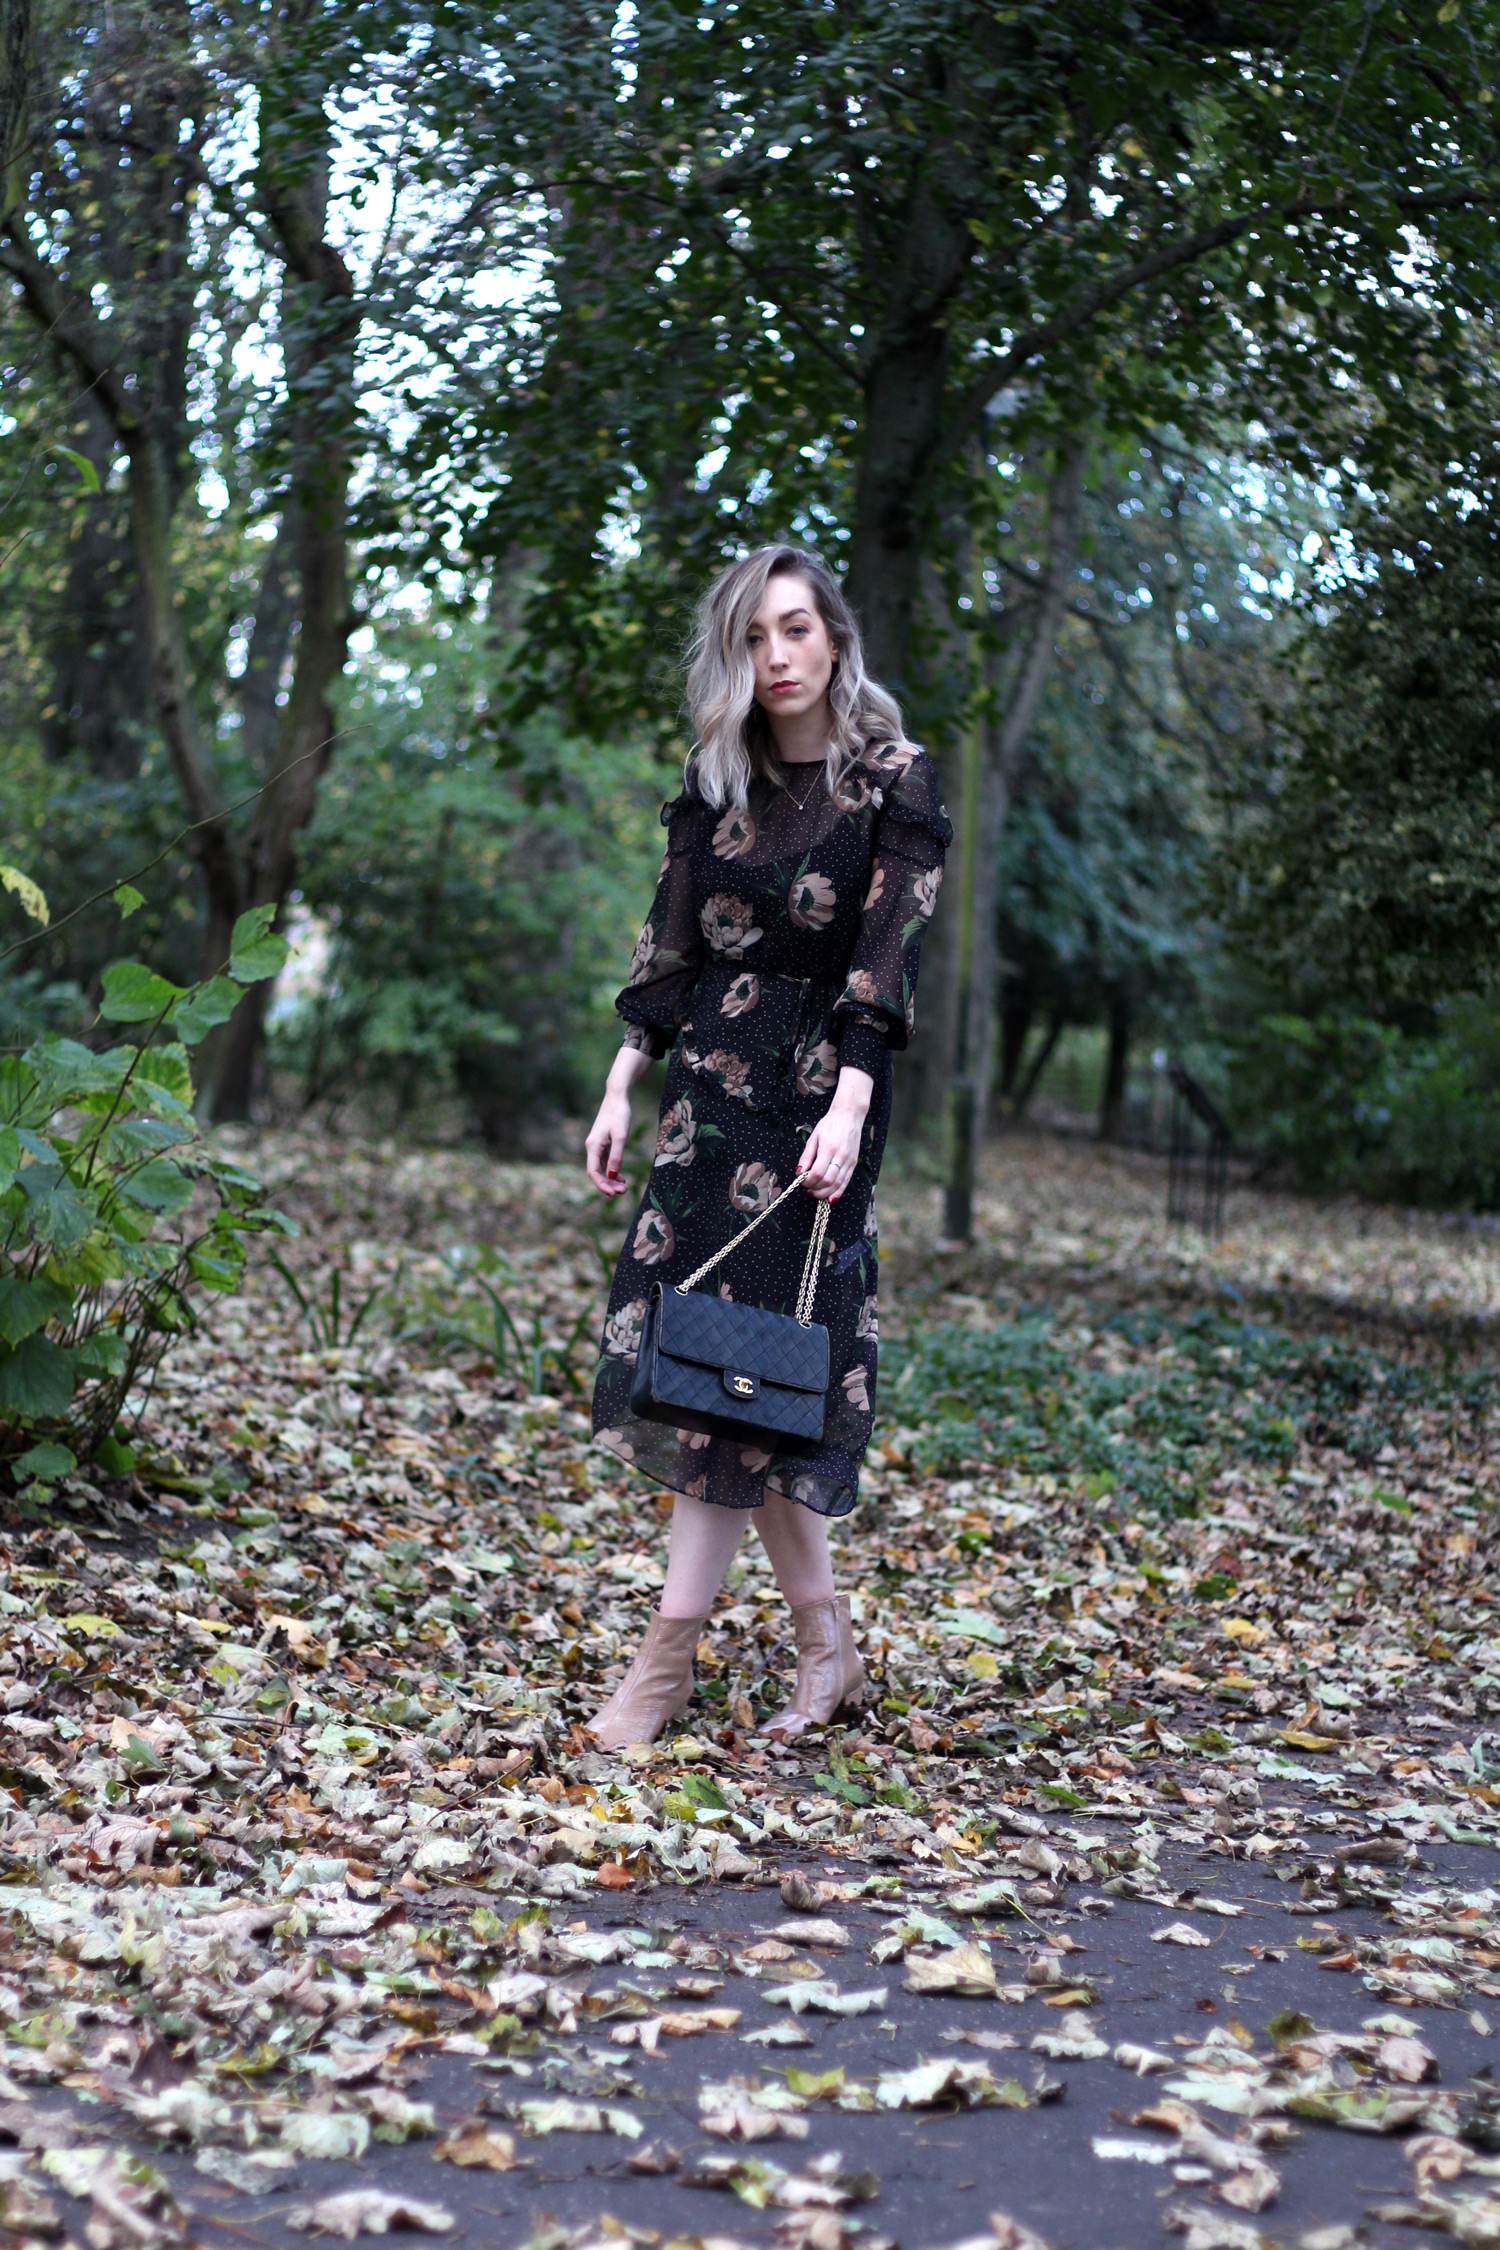 next-floral-midi-dress-nude-leather-boots-vintage-chanel-autumn-outfit-2